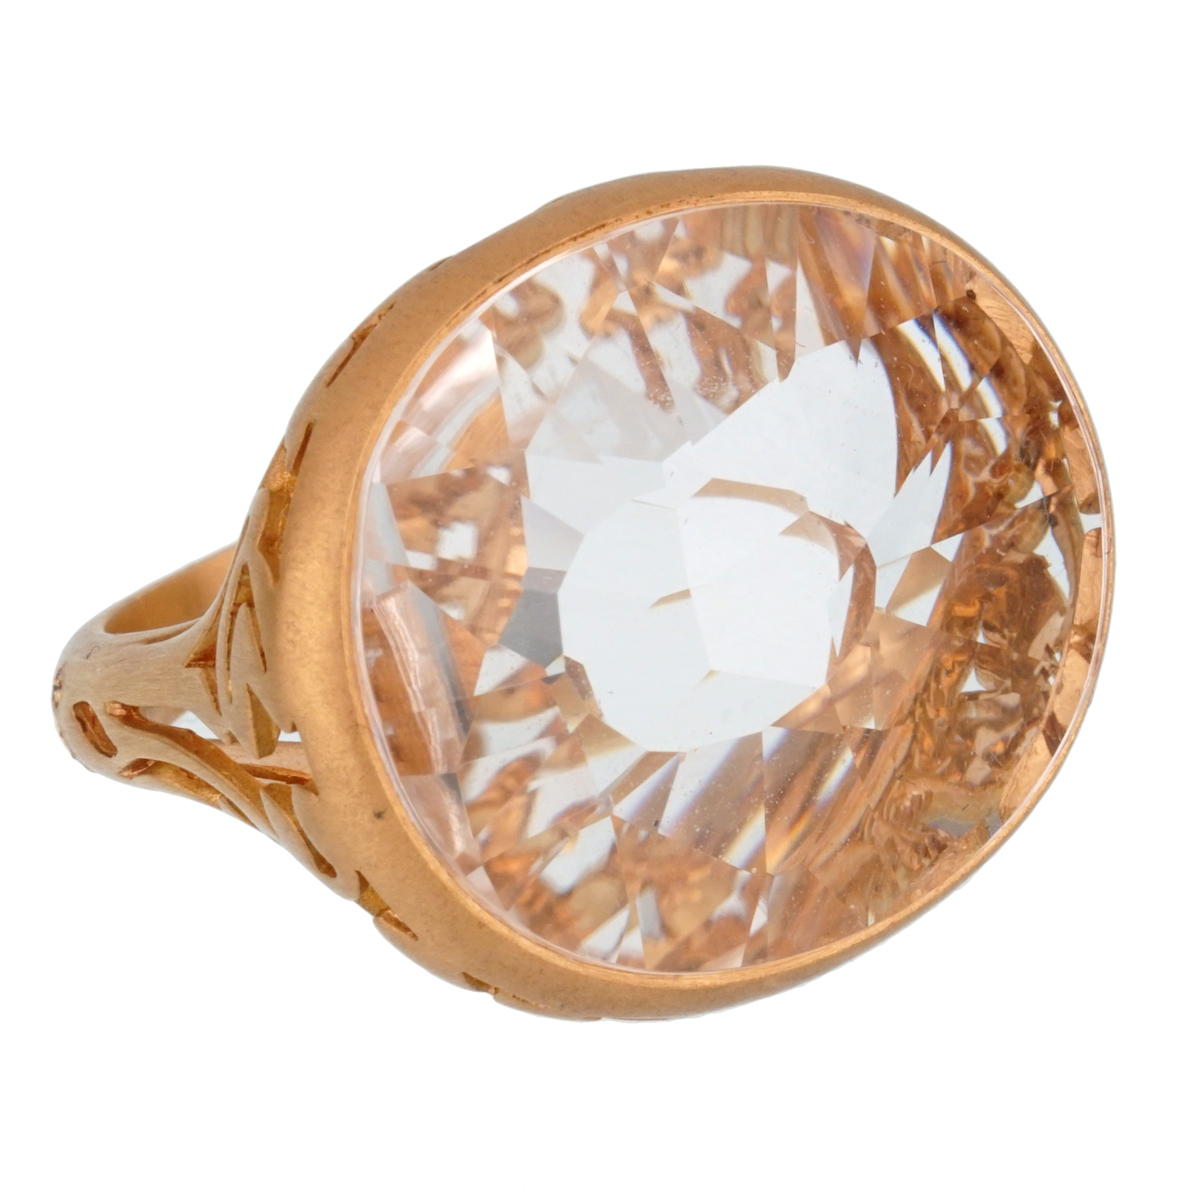 Pomellato 10 Carat Quartz Cocktail Rose Gold Ring Sz 5.75